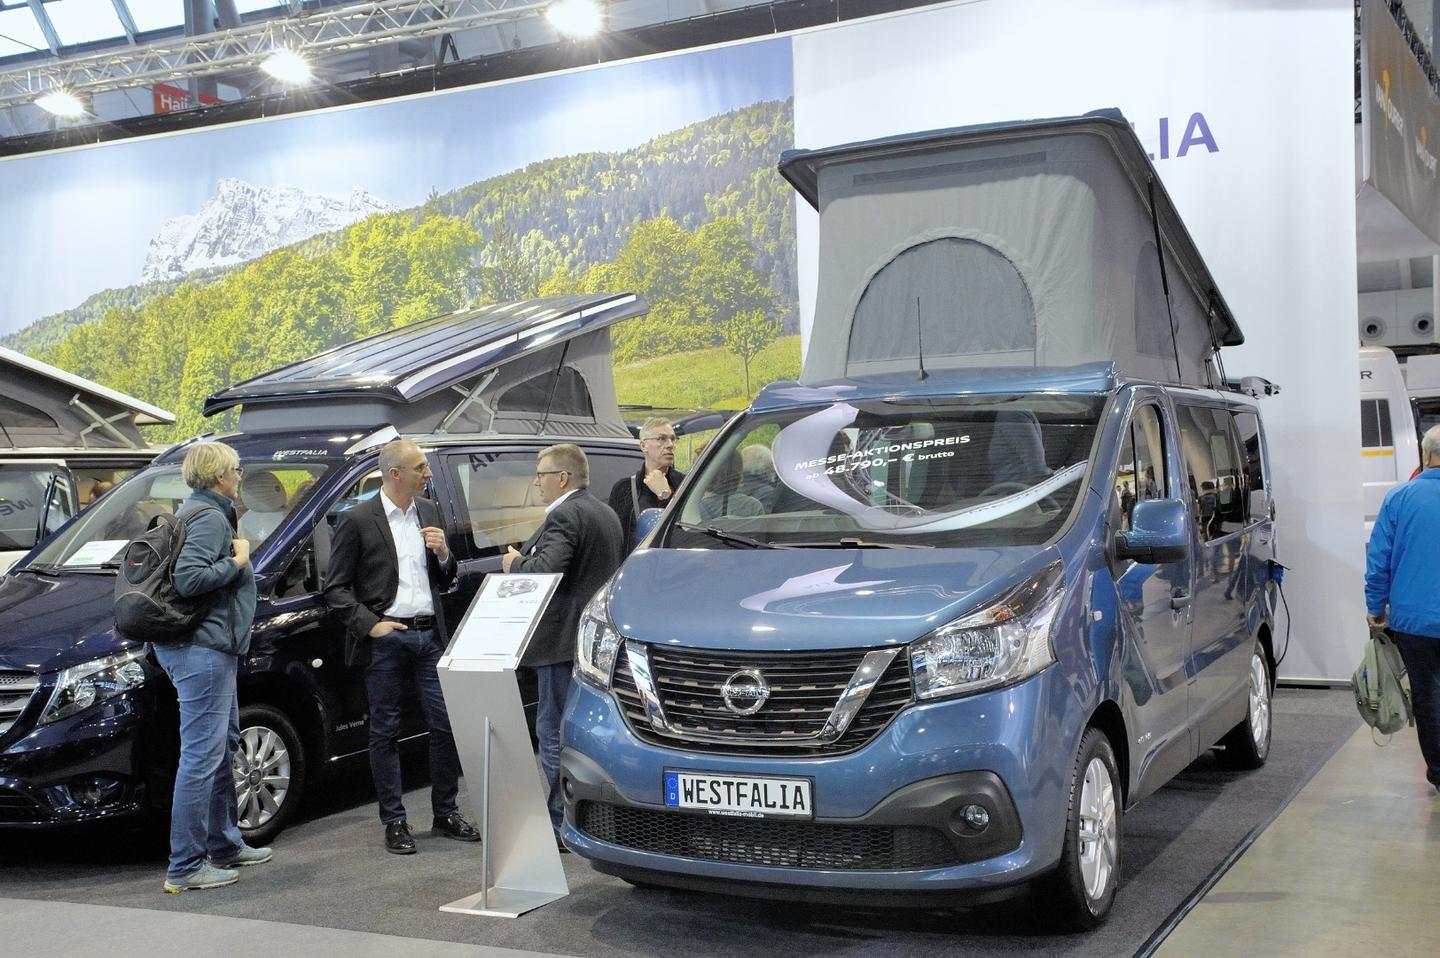 The van was selling for just under 48,800euros at the show, but Westfalia's press release doesn't specify a retail price